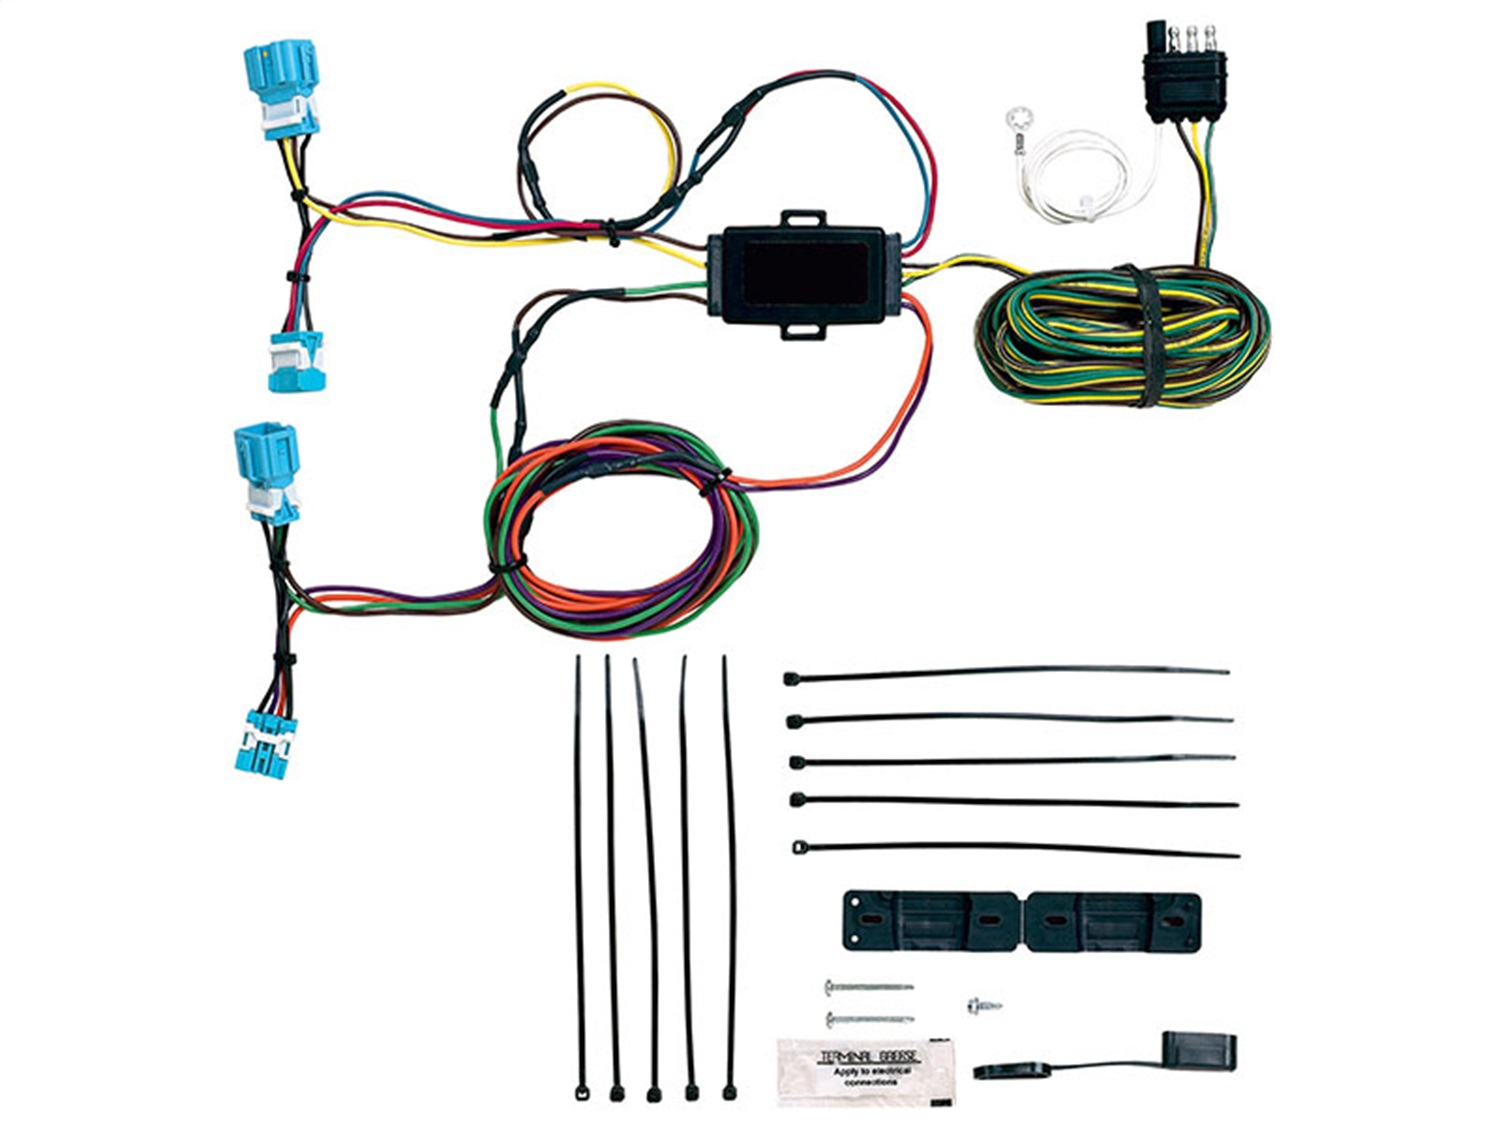 blue light wiring harness blue ox bx88281 ez light wiring harness kit fits 07-11 cr ... mustang fog light wiring harness